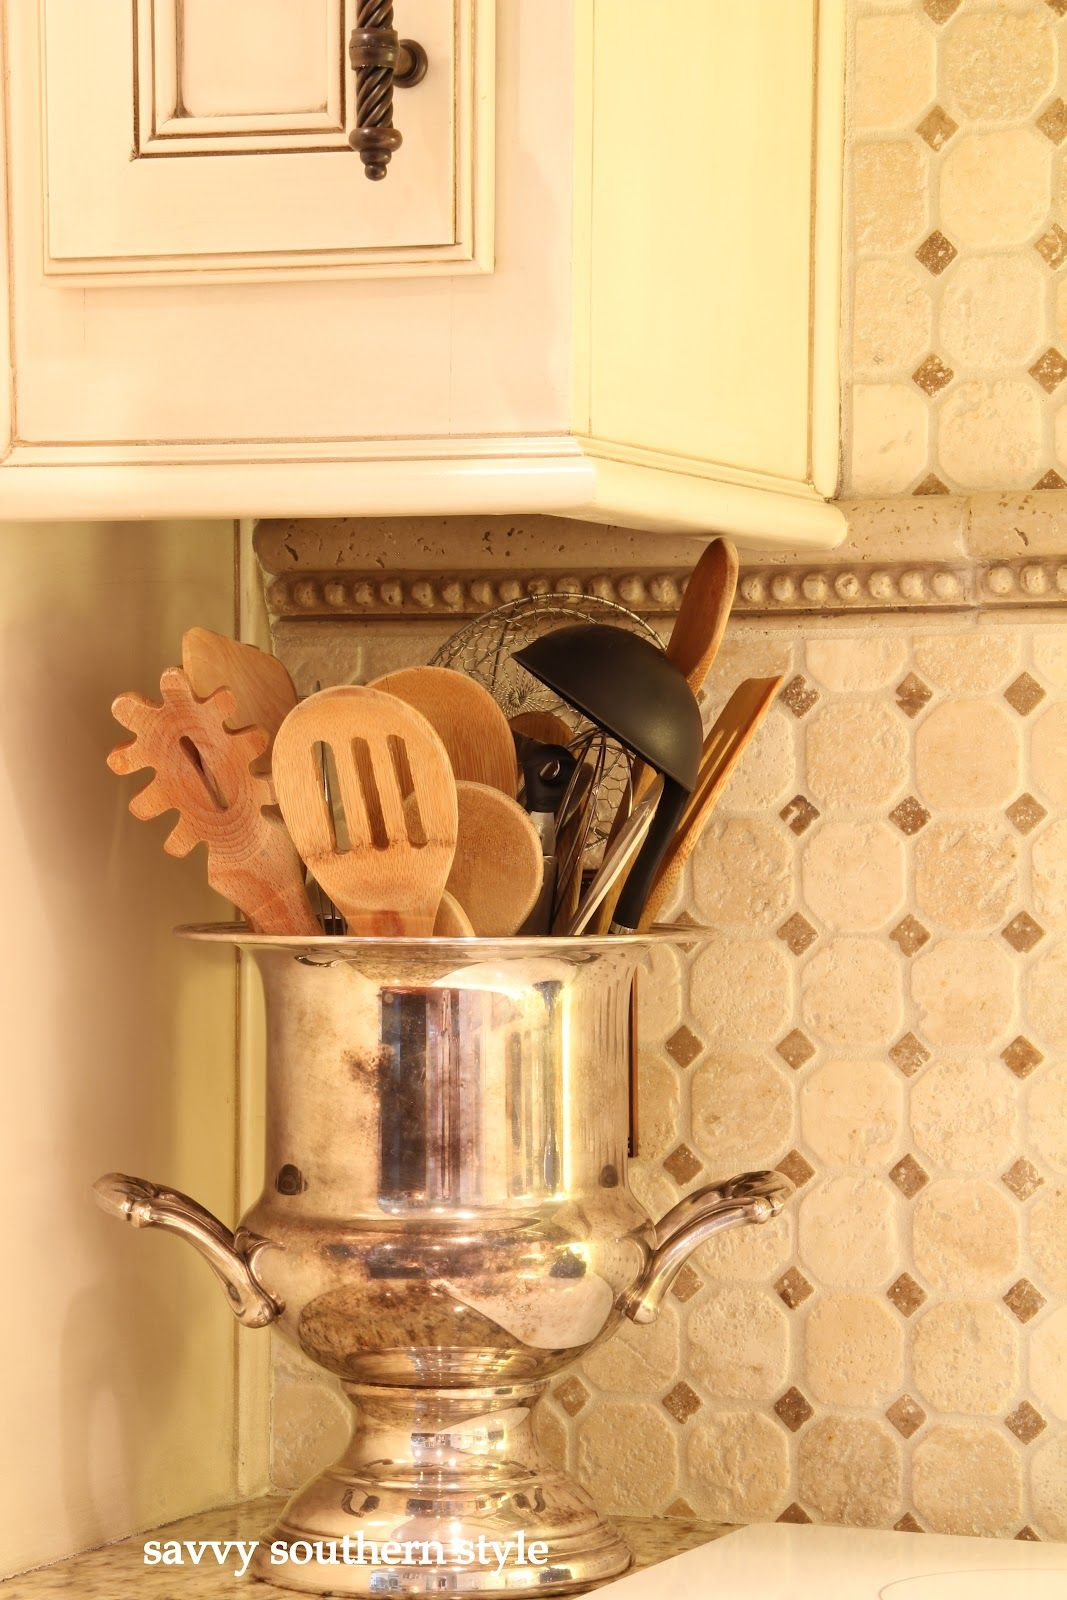 Use a champagne bucket to store kitchen tools for added glam